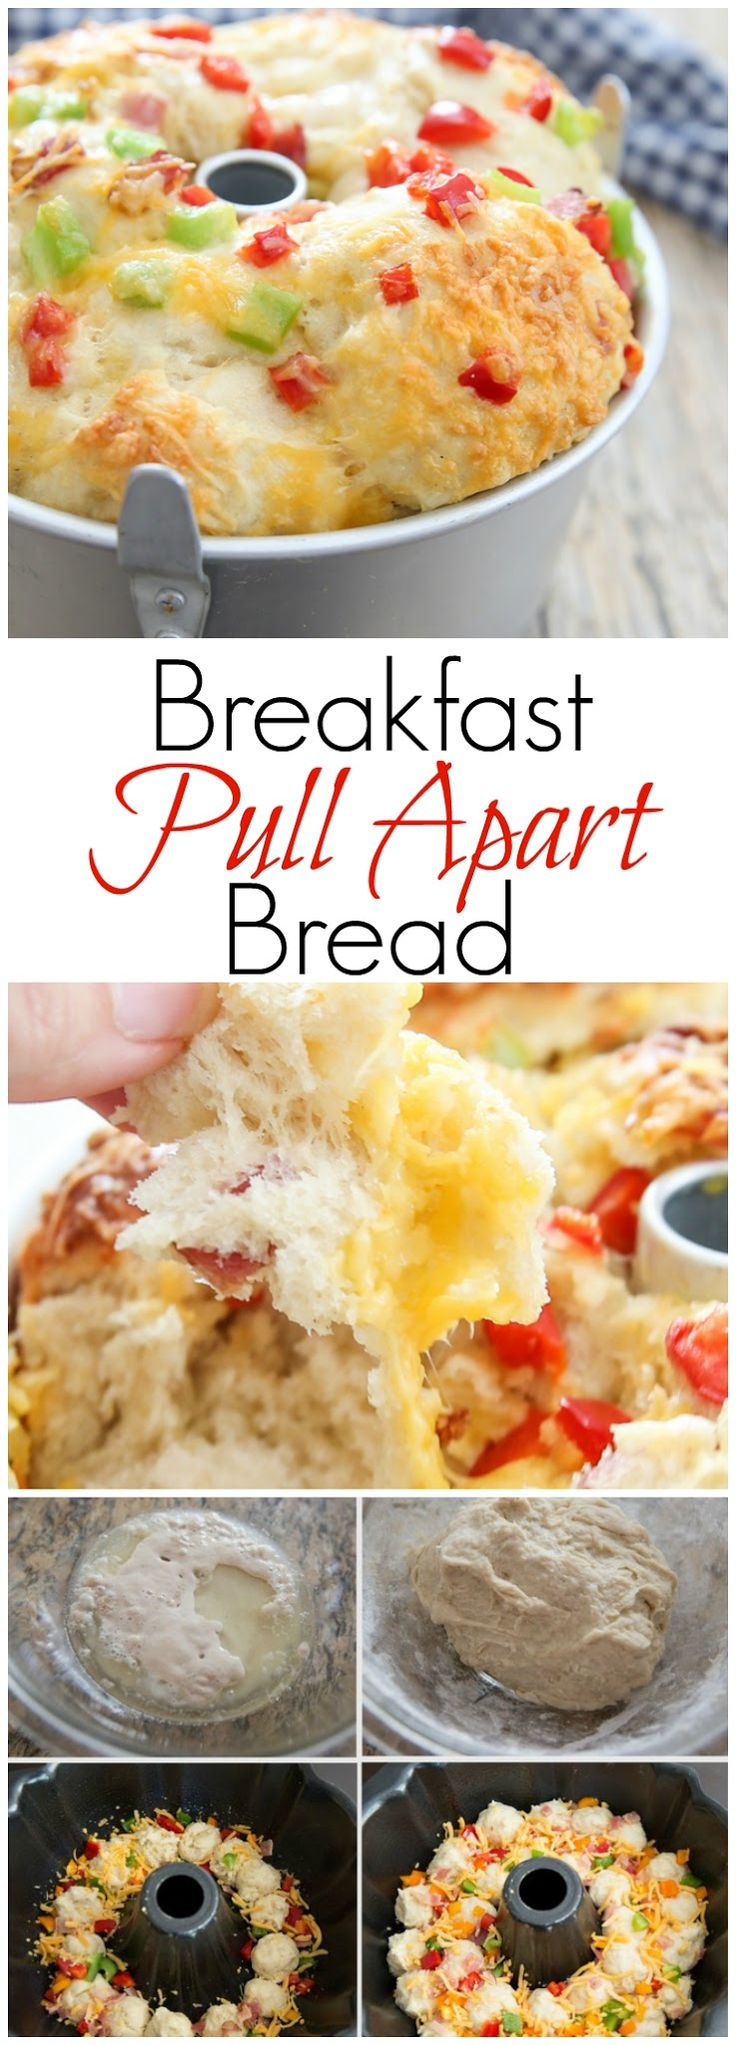 Breakfast Pull Apart Bread. Easy, made-from-scratch bread, peppers, bacon, cheese and eggs. All your breakfast ingredients wrapped up together.